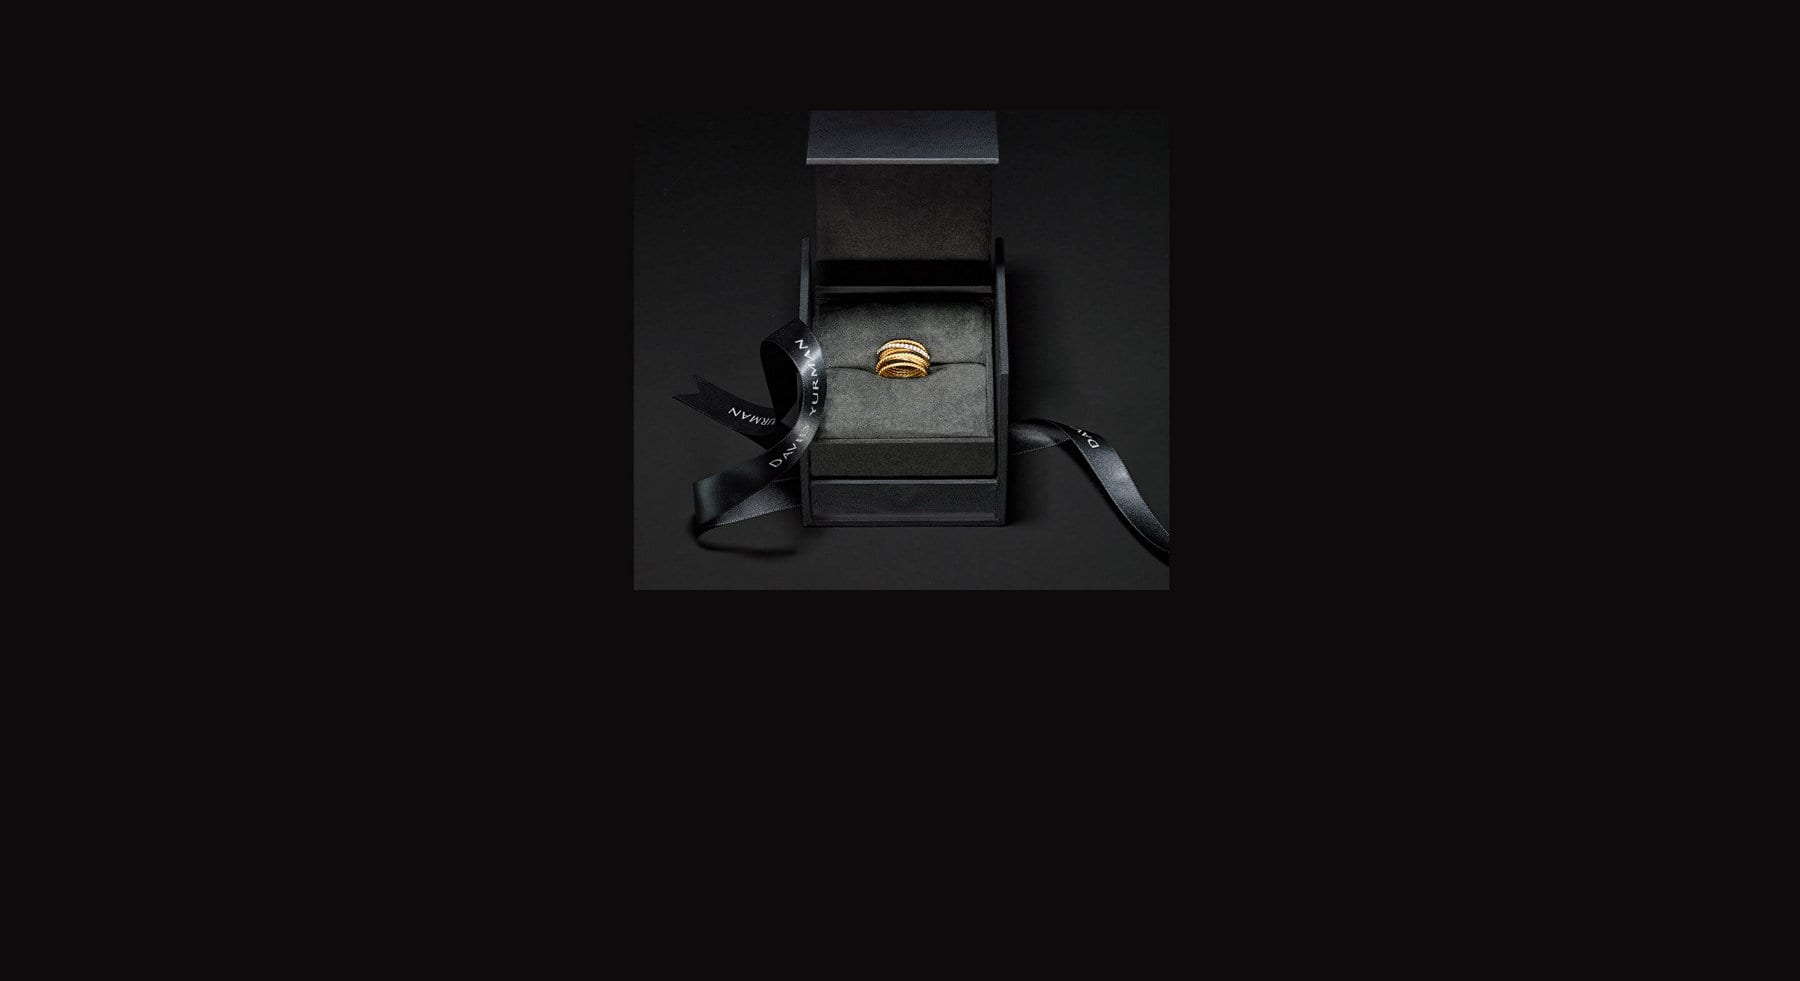 A color photo shows an open David Yurman black ring box on a black background. Inside is a David Yurman women's Crossover ring in 18K yellow gold with pavé diamonds. Underneath the box is a black ribbon featuring the David Yurman logo printed in white.